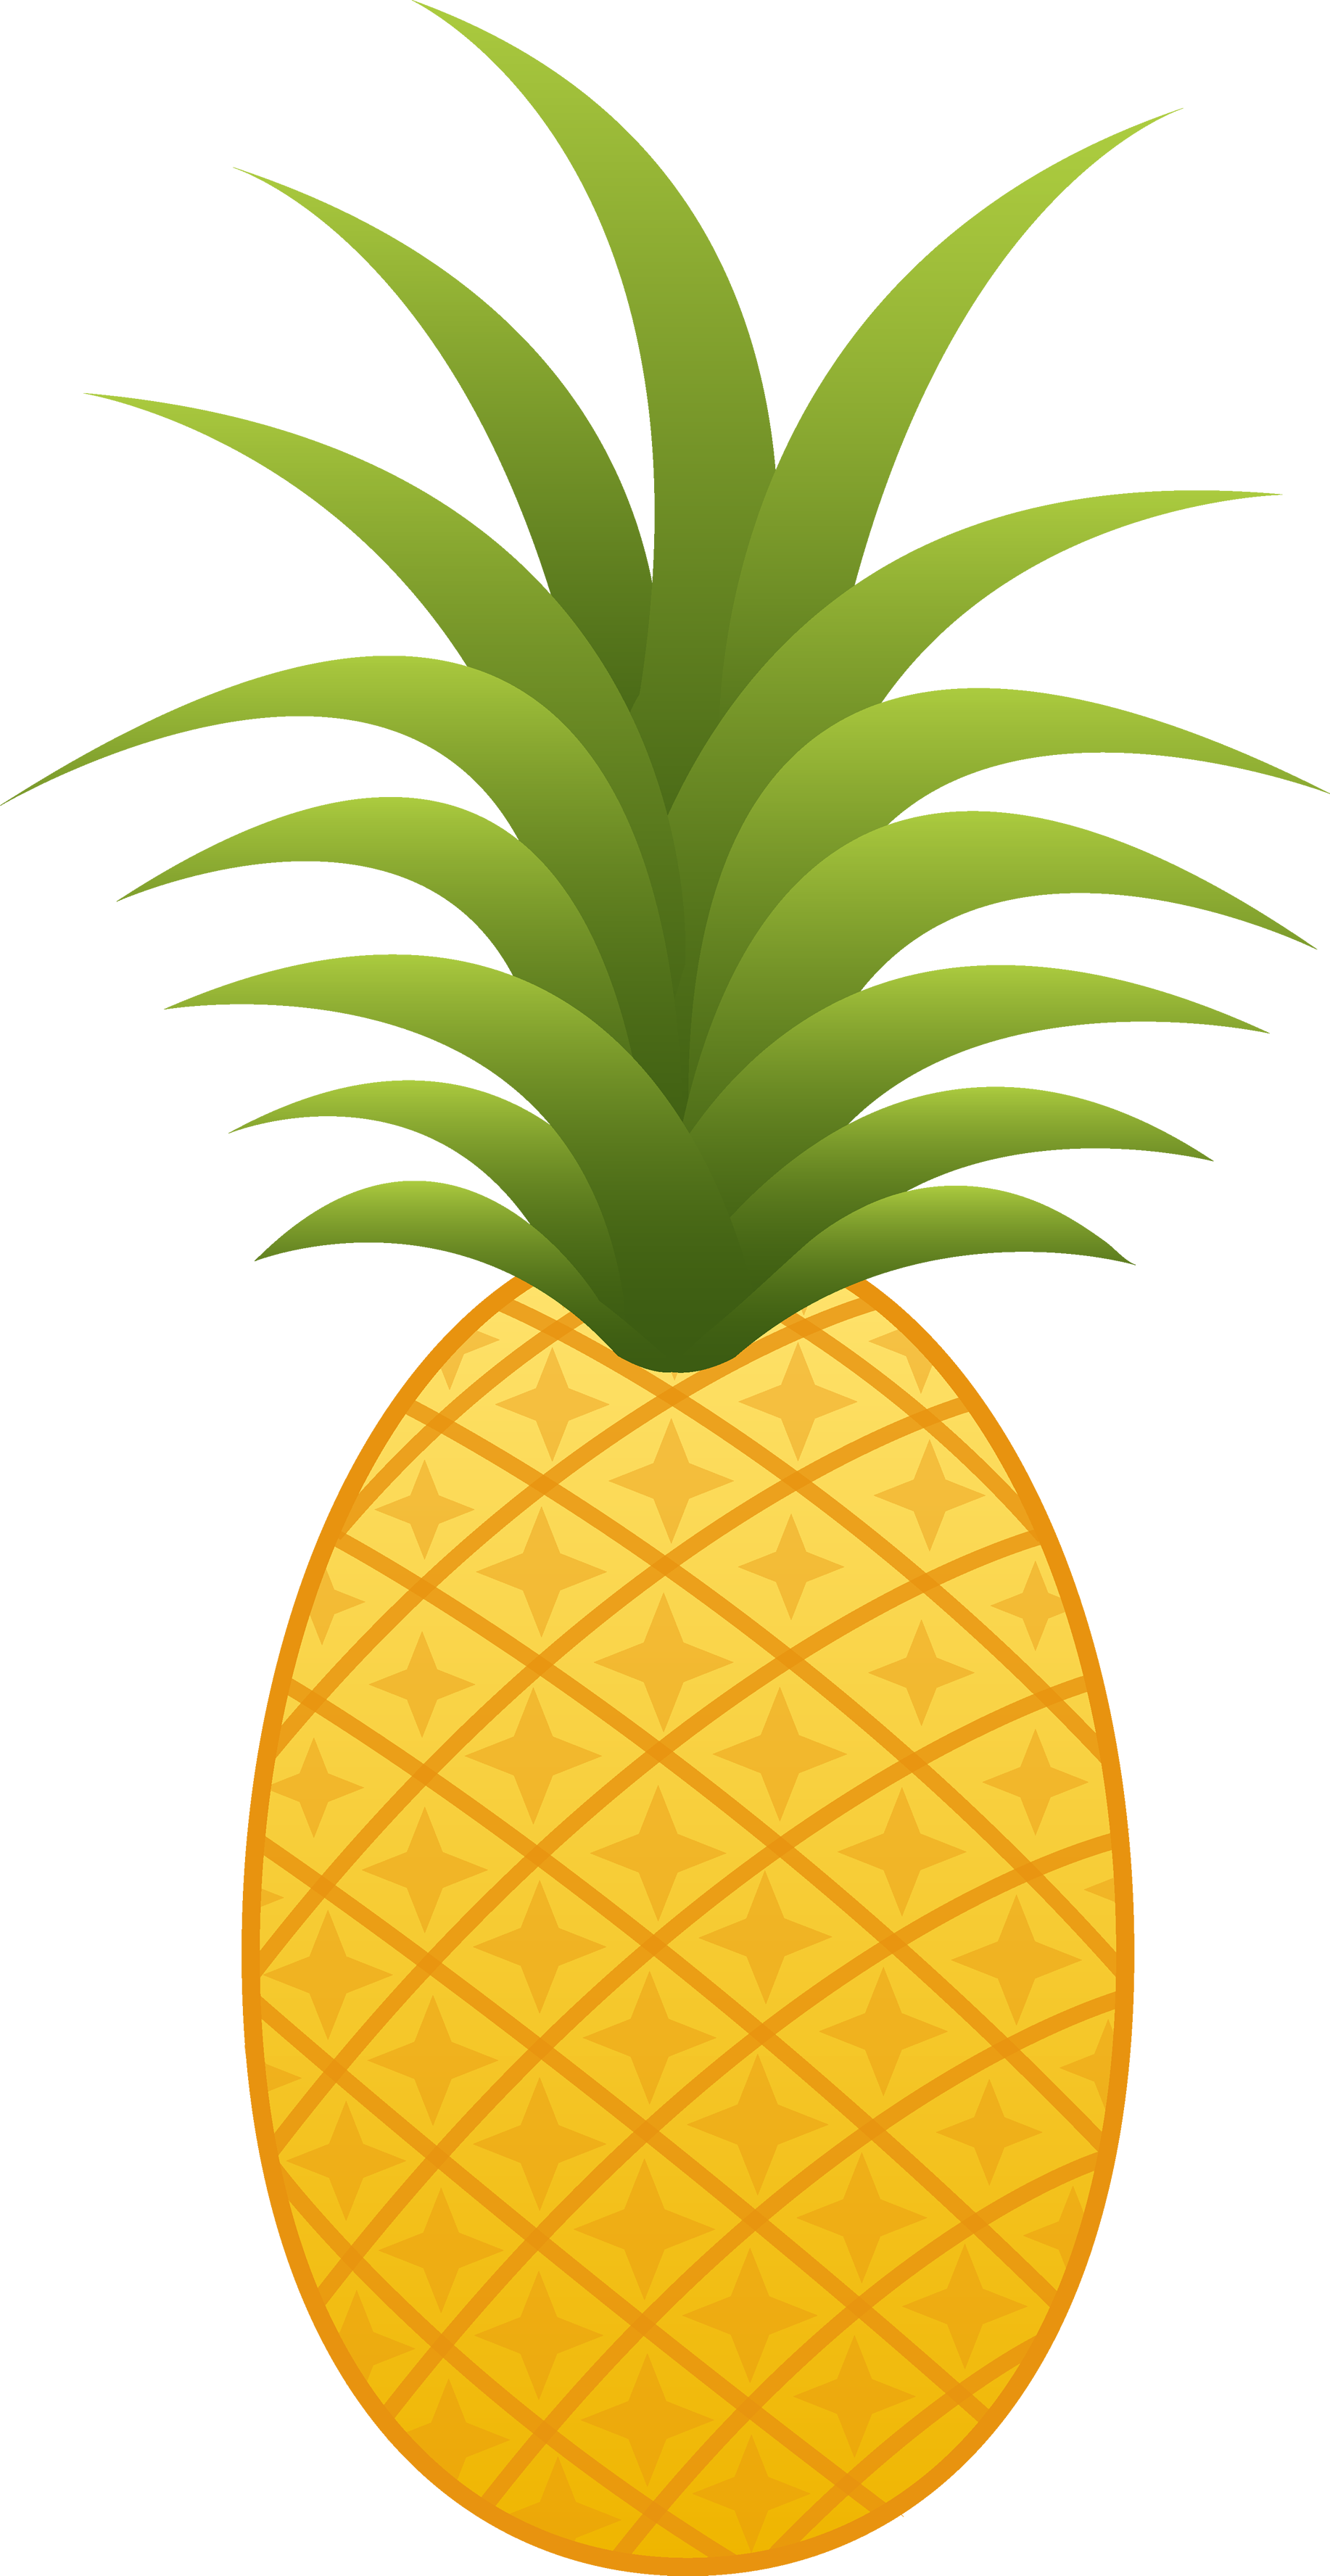 picture free stock Images free pictures download. Beach transparent pineapple